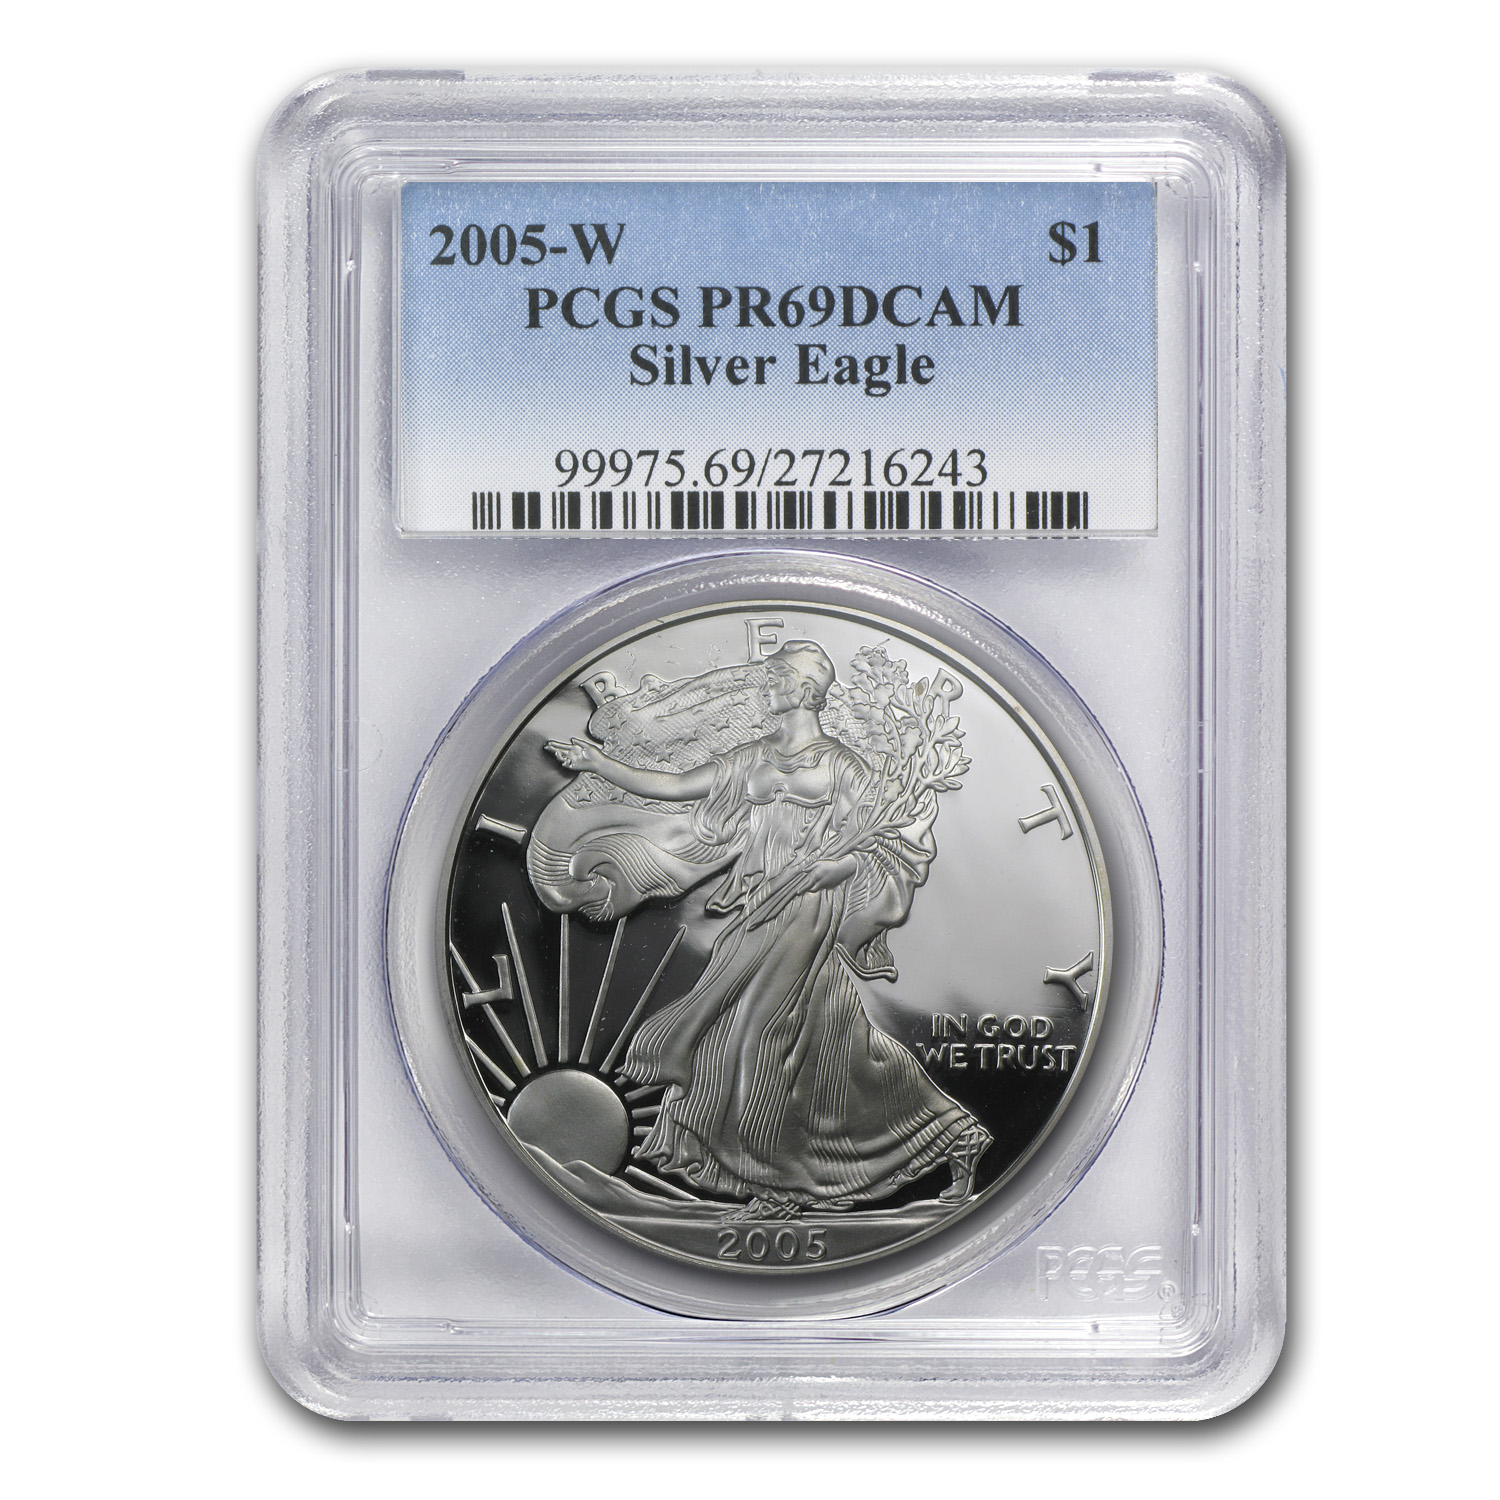 2005-W Proof Silver American Eagle PR-69 PCGS